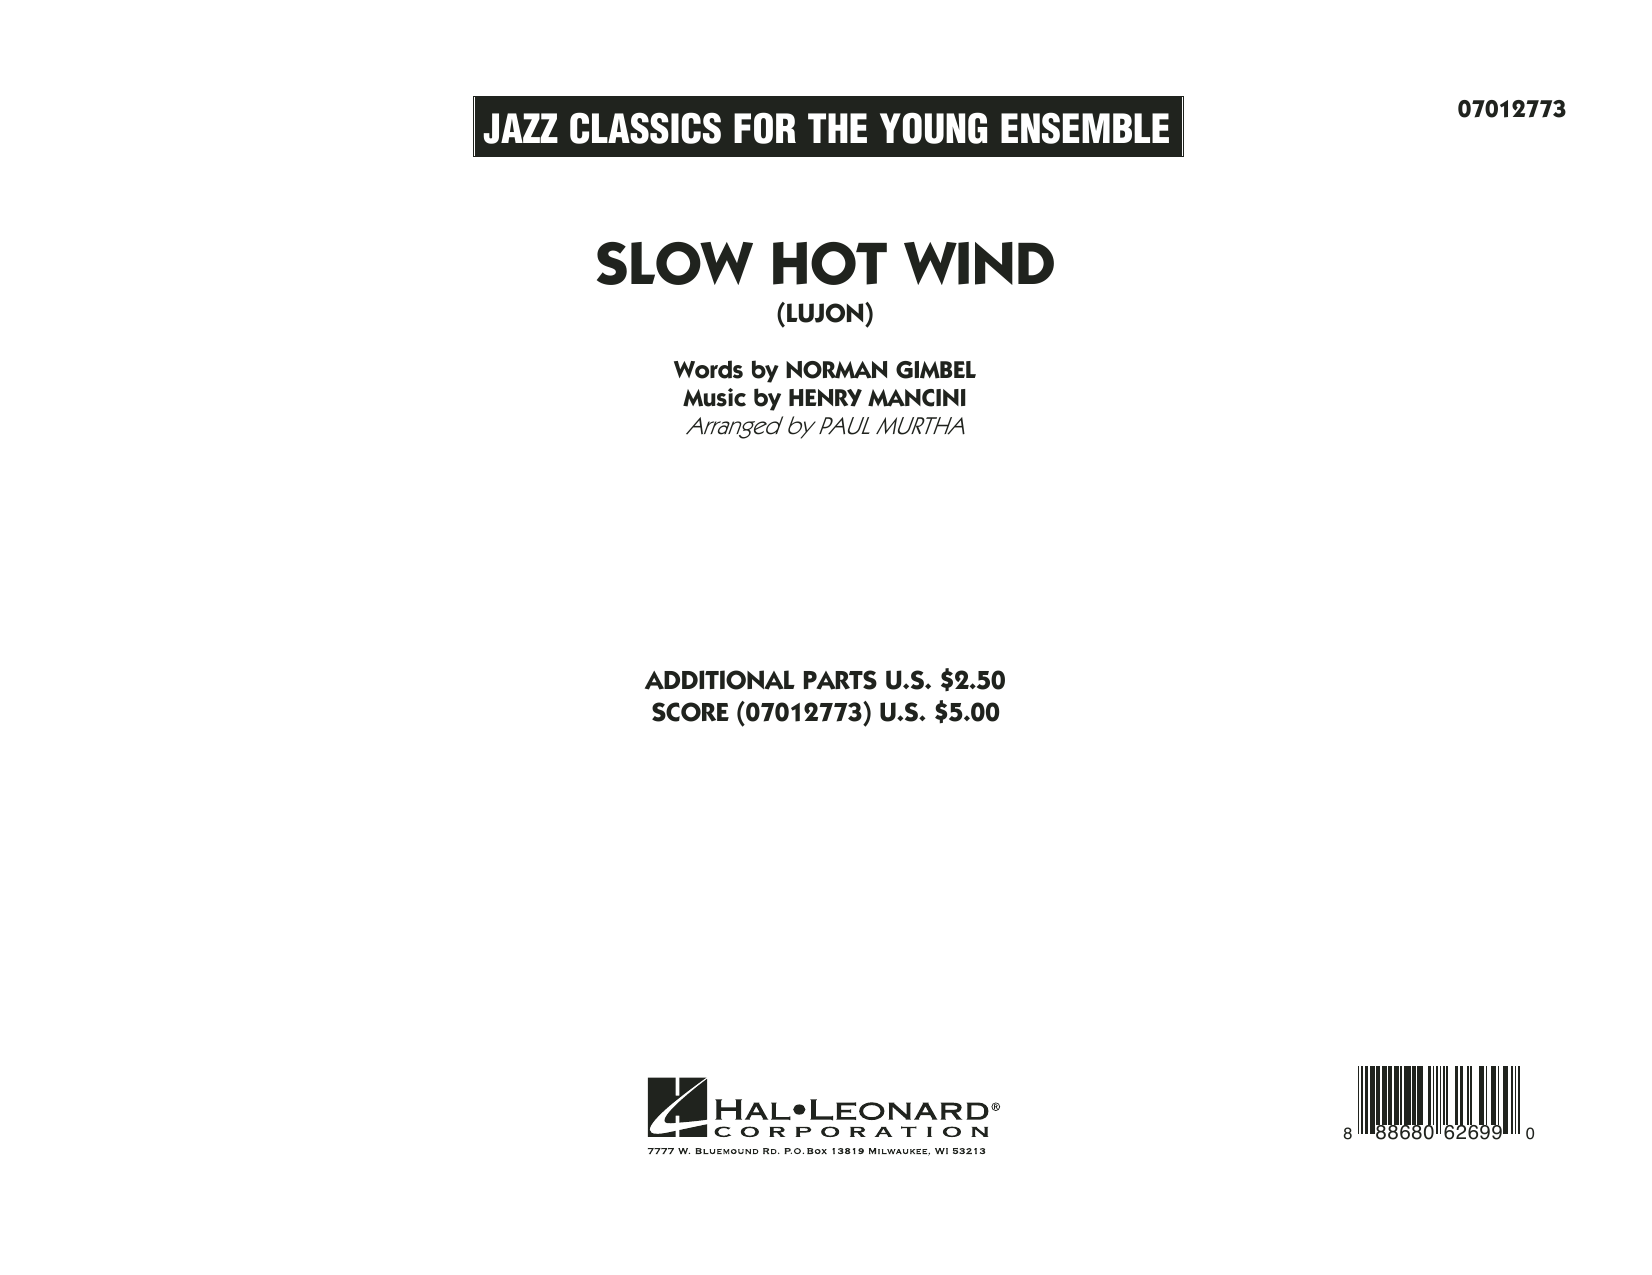 Slow Hot Wind (Lujon) (COMPLETE) sheet music for jazz band by Henry Mancini, Norman Gimbel and Paul Murtha. Score Image Preview.